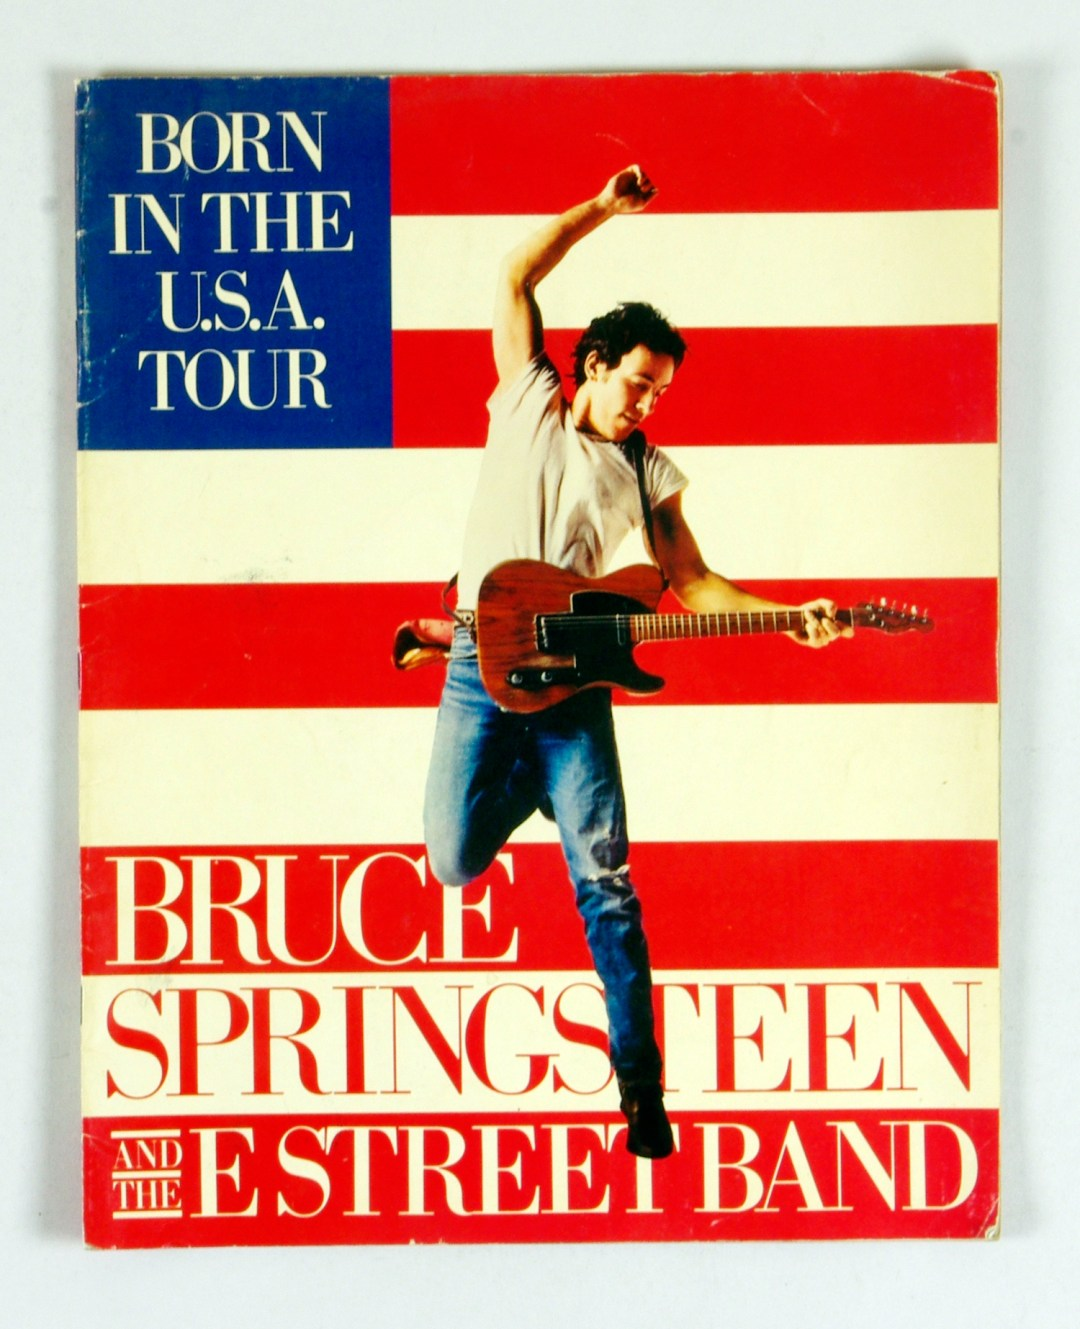 Bruce Springsteen Program Book 1984 1985 Born In The USA Tour 11 x 14